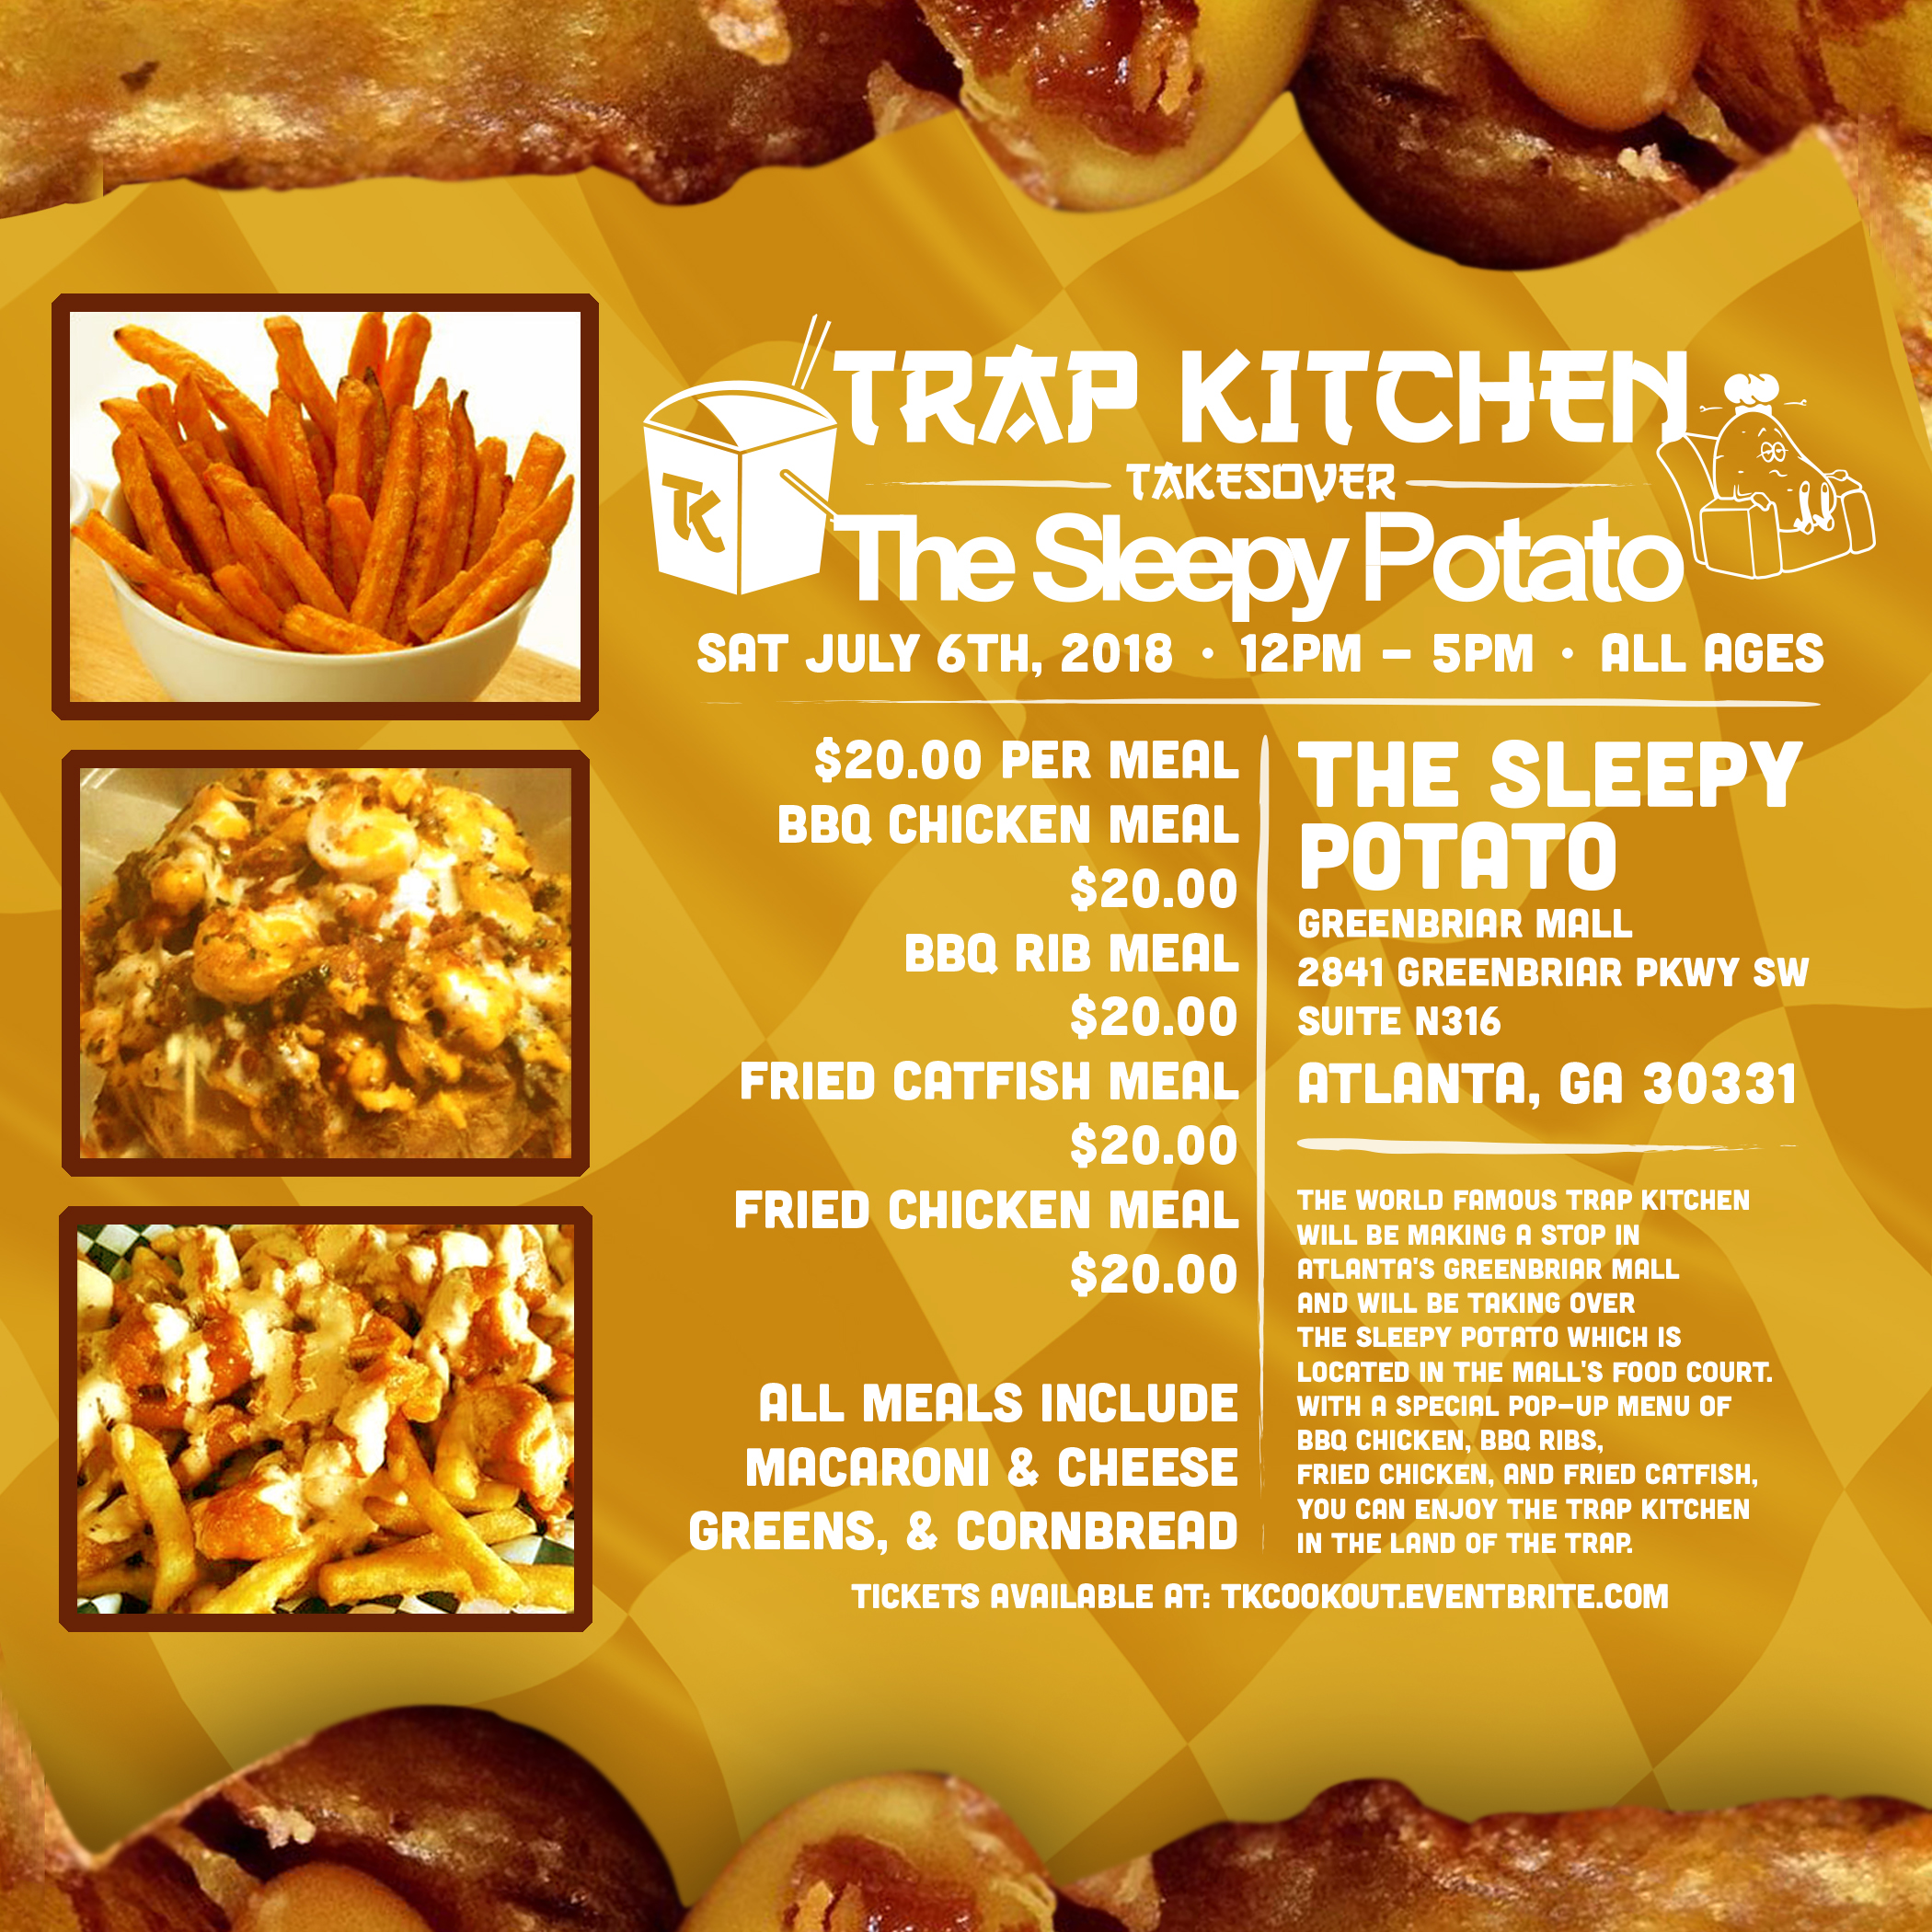 more info on the trap kitchen - Trap Kitchen